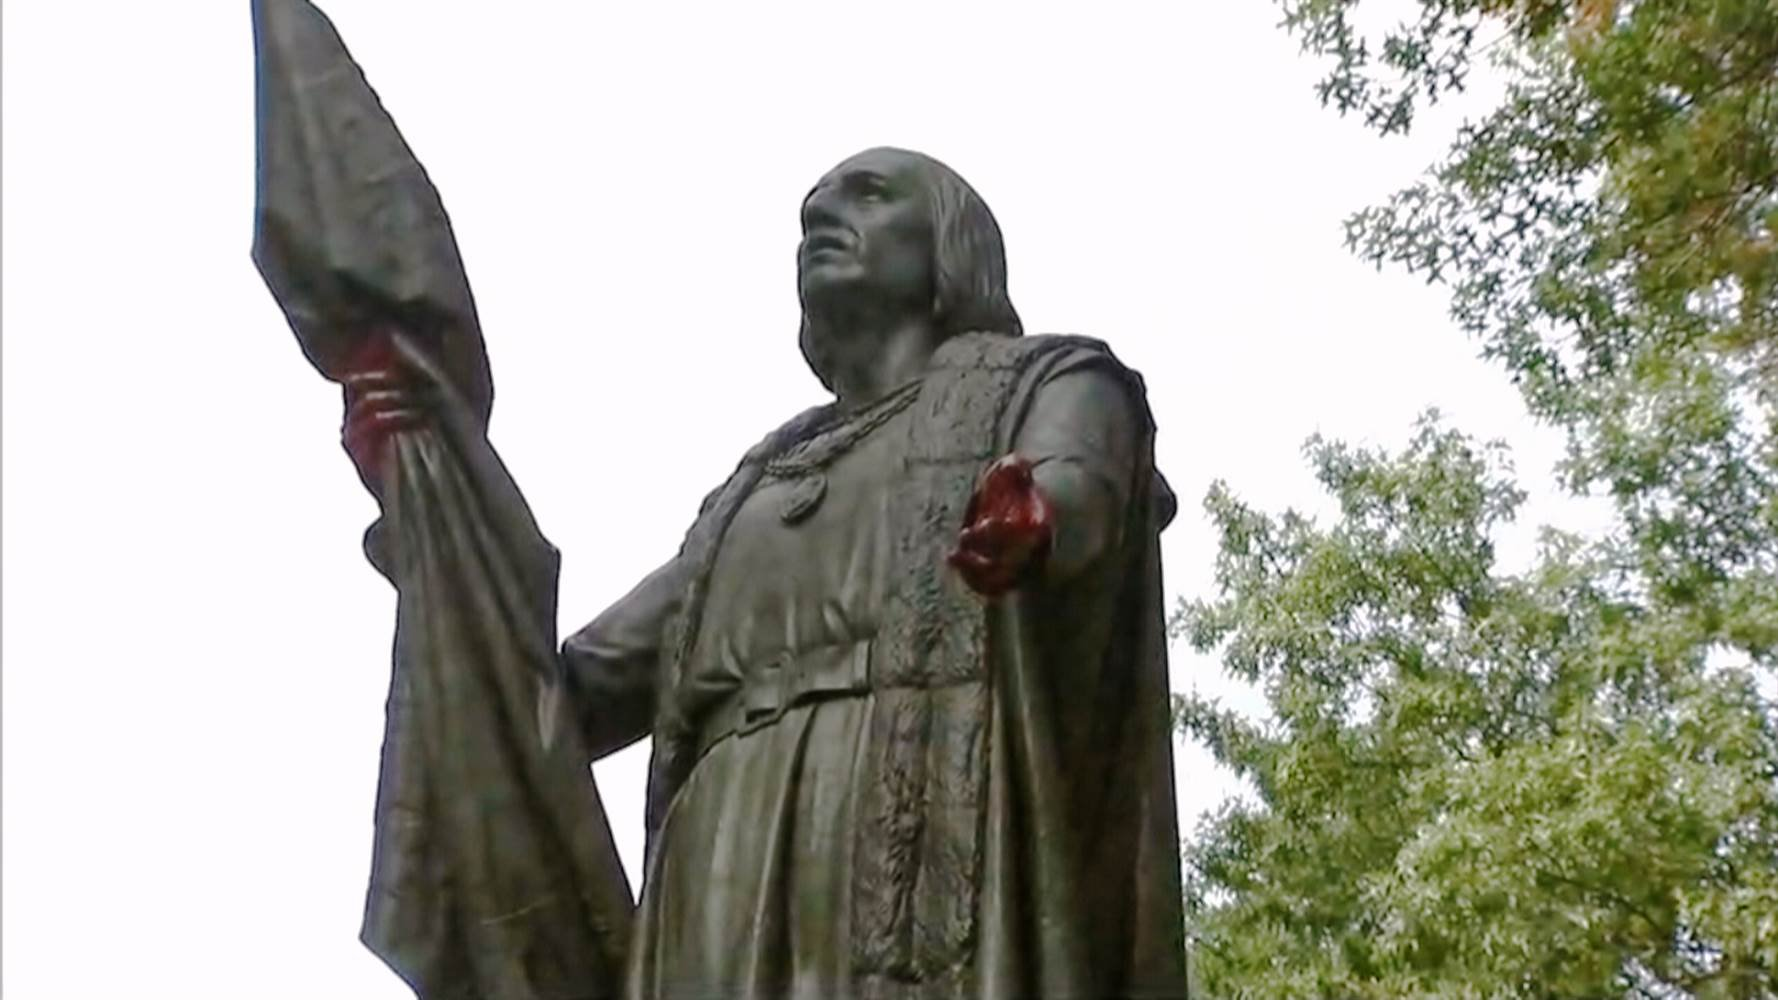 A statue of Christopher Columbus was vandalized in Central Park in New York. NBC News